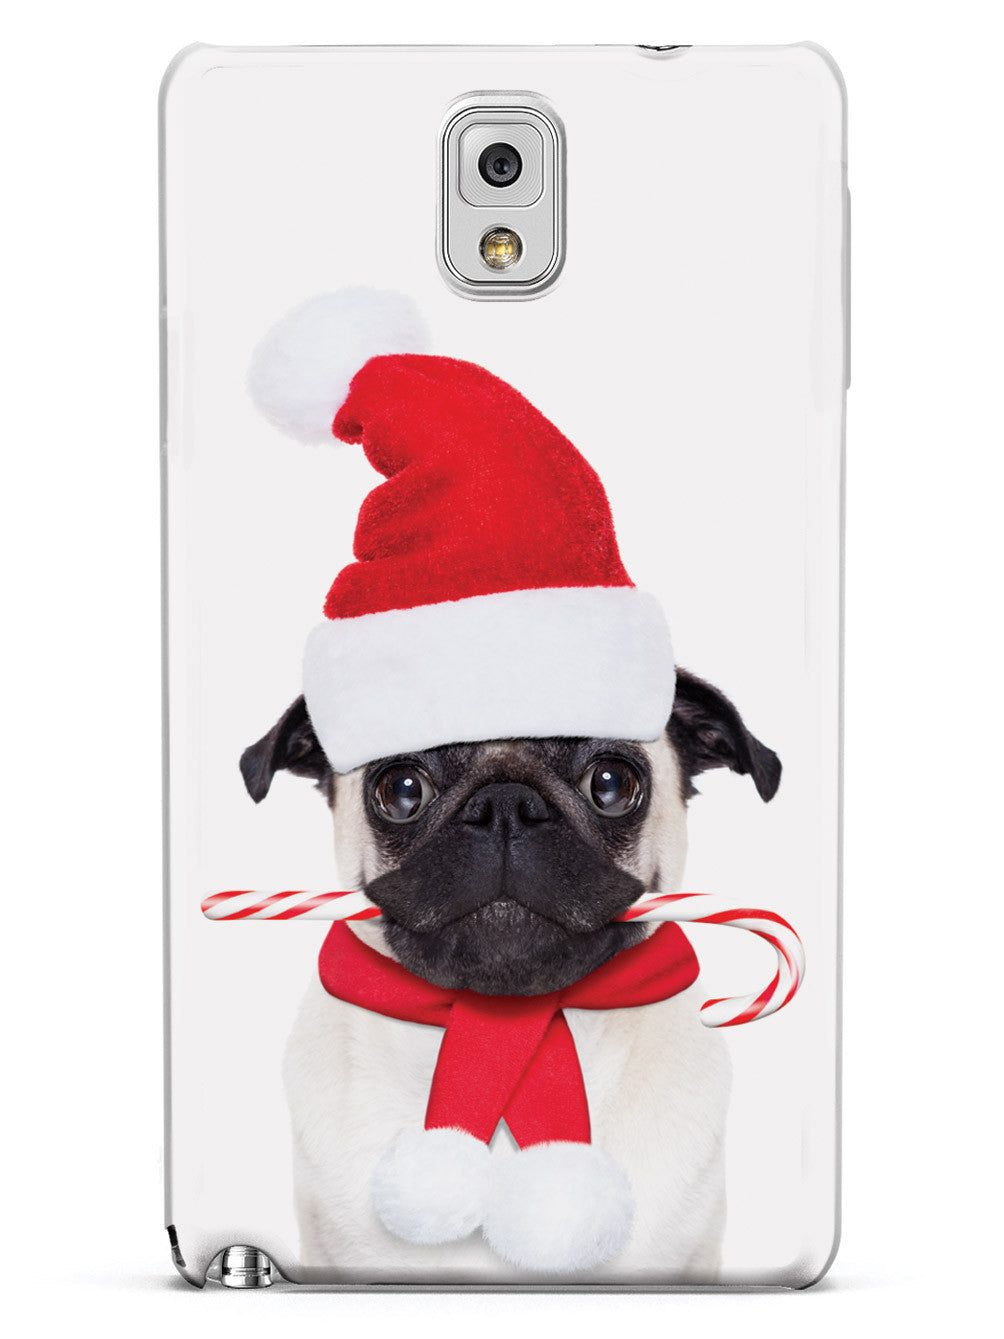 Candy Cane Christmas Pug Case